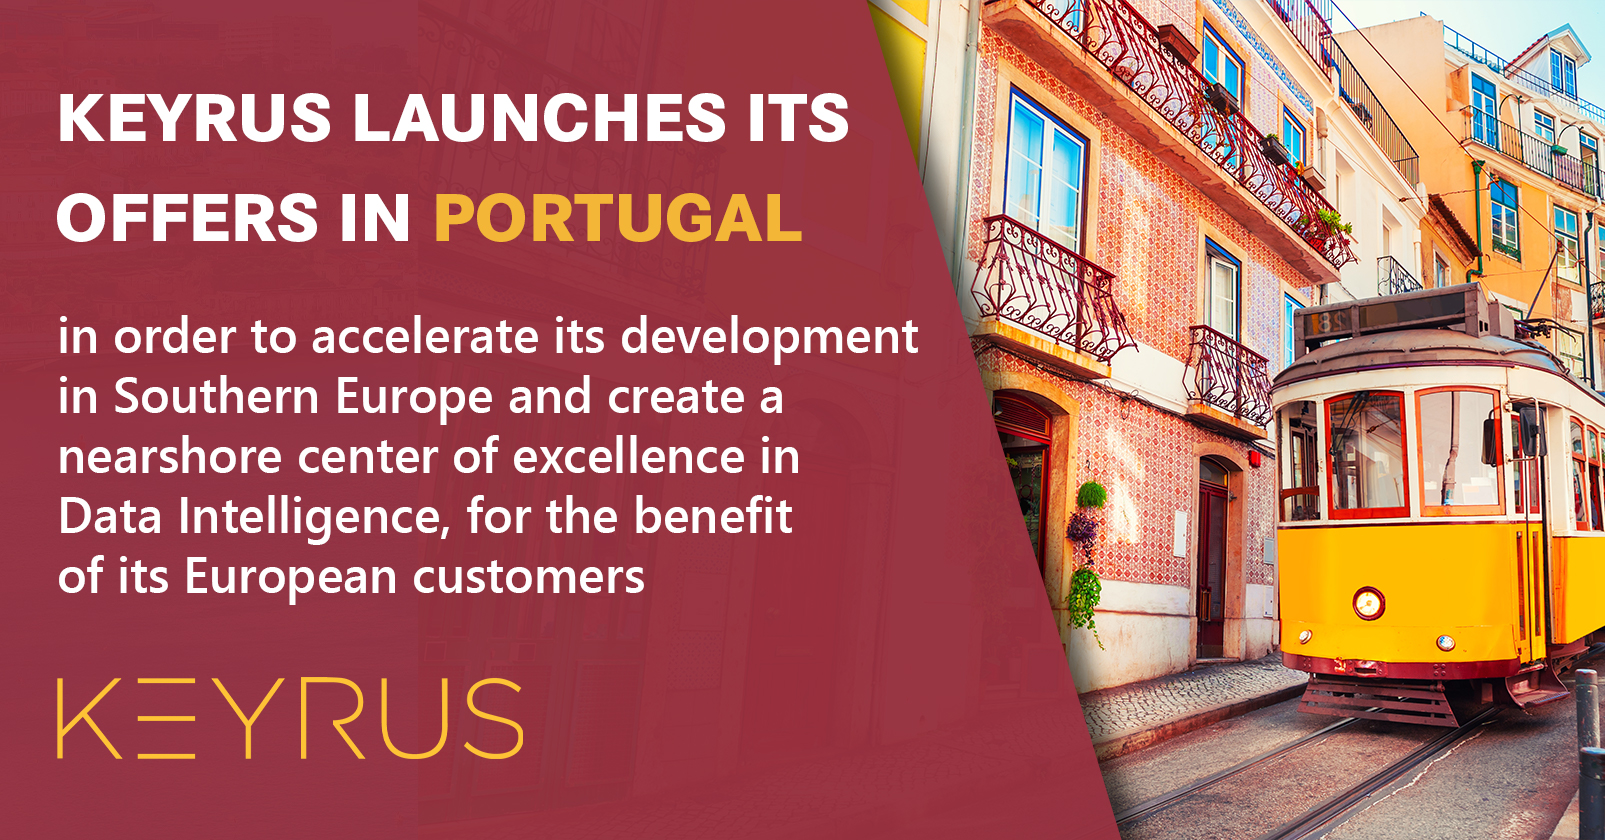 Keyrus launches its offers in Portuga